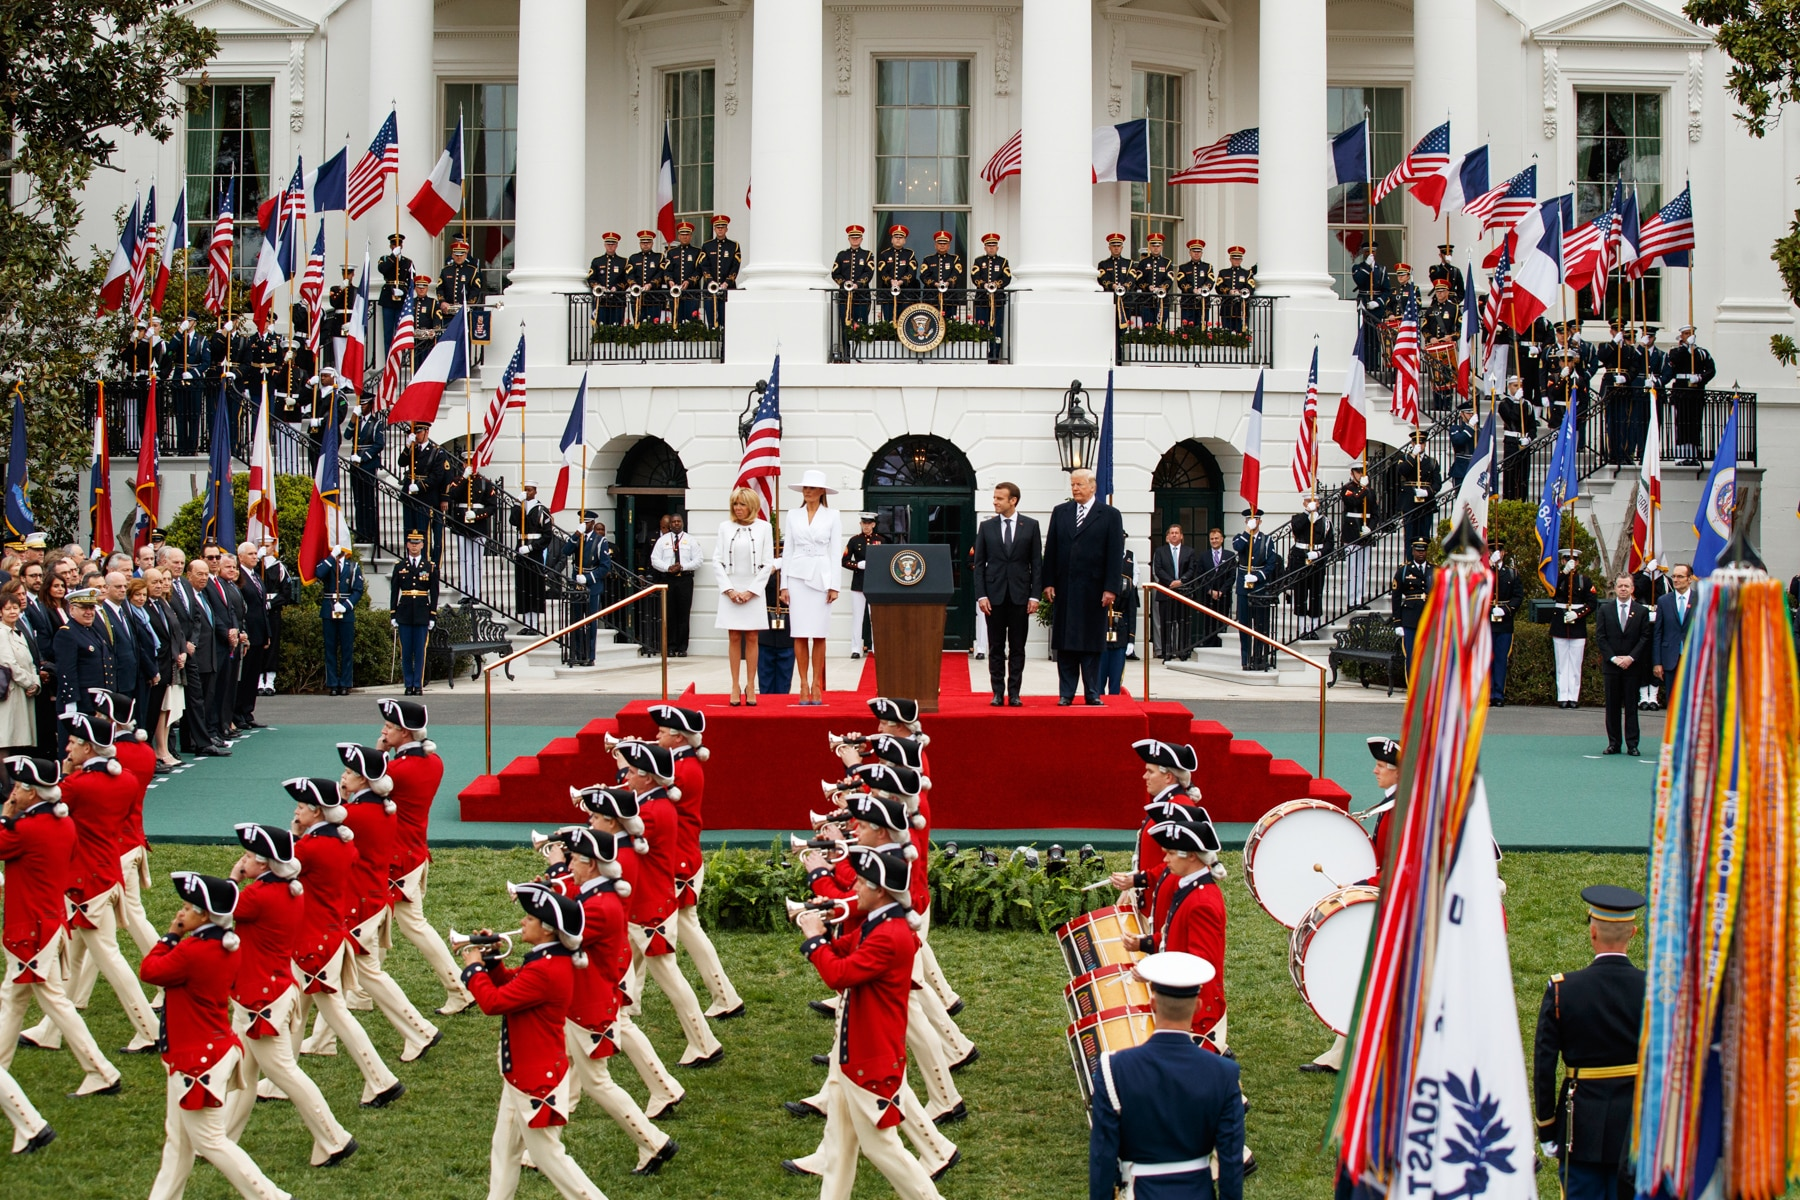 A band marching on the South Lawn of the White House as Presidents Trump and Macron, their wives and others look on (© Evan Vucci/AP Images)